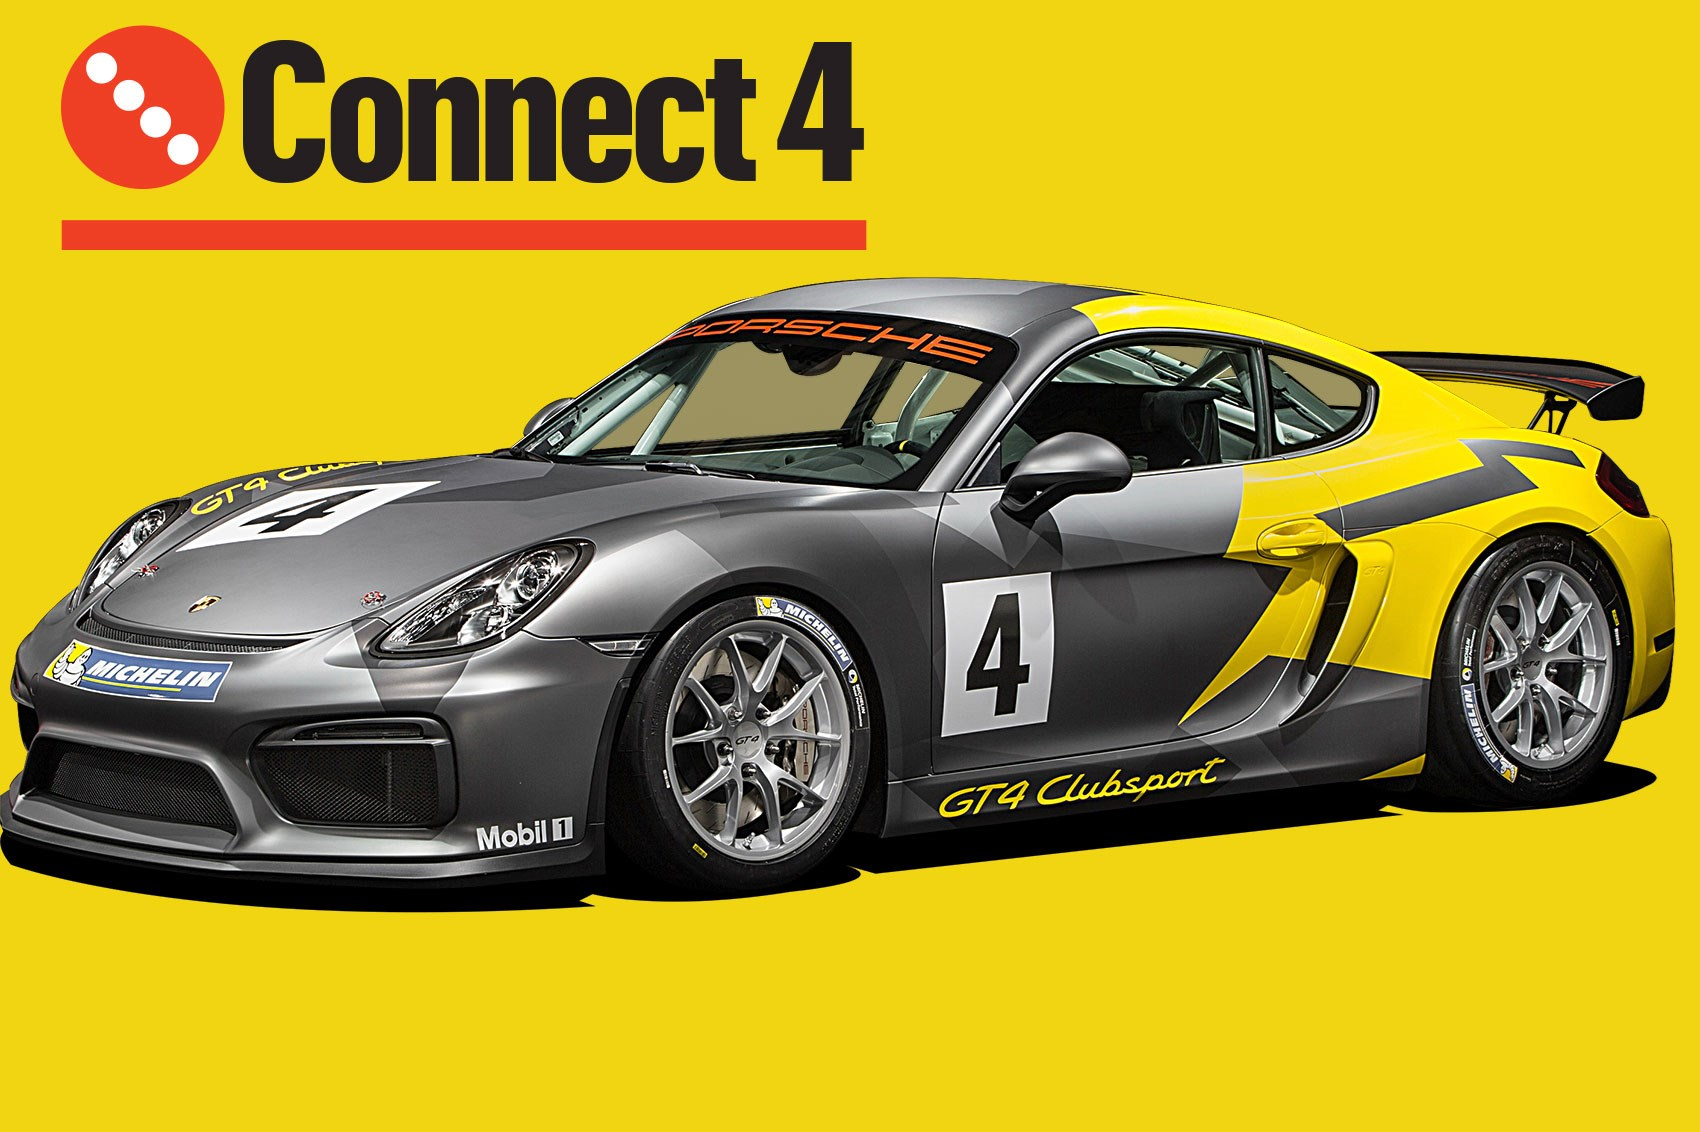 Gt4 Clubsport For Sale >> Connect 4: Clubsport Porsches, CAR+ January 2016   CAR Magazine